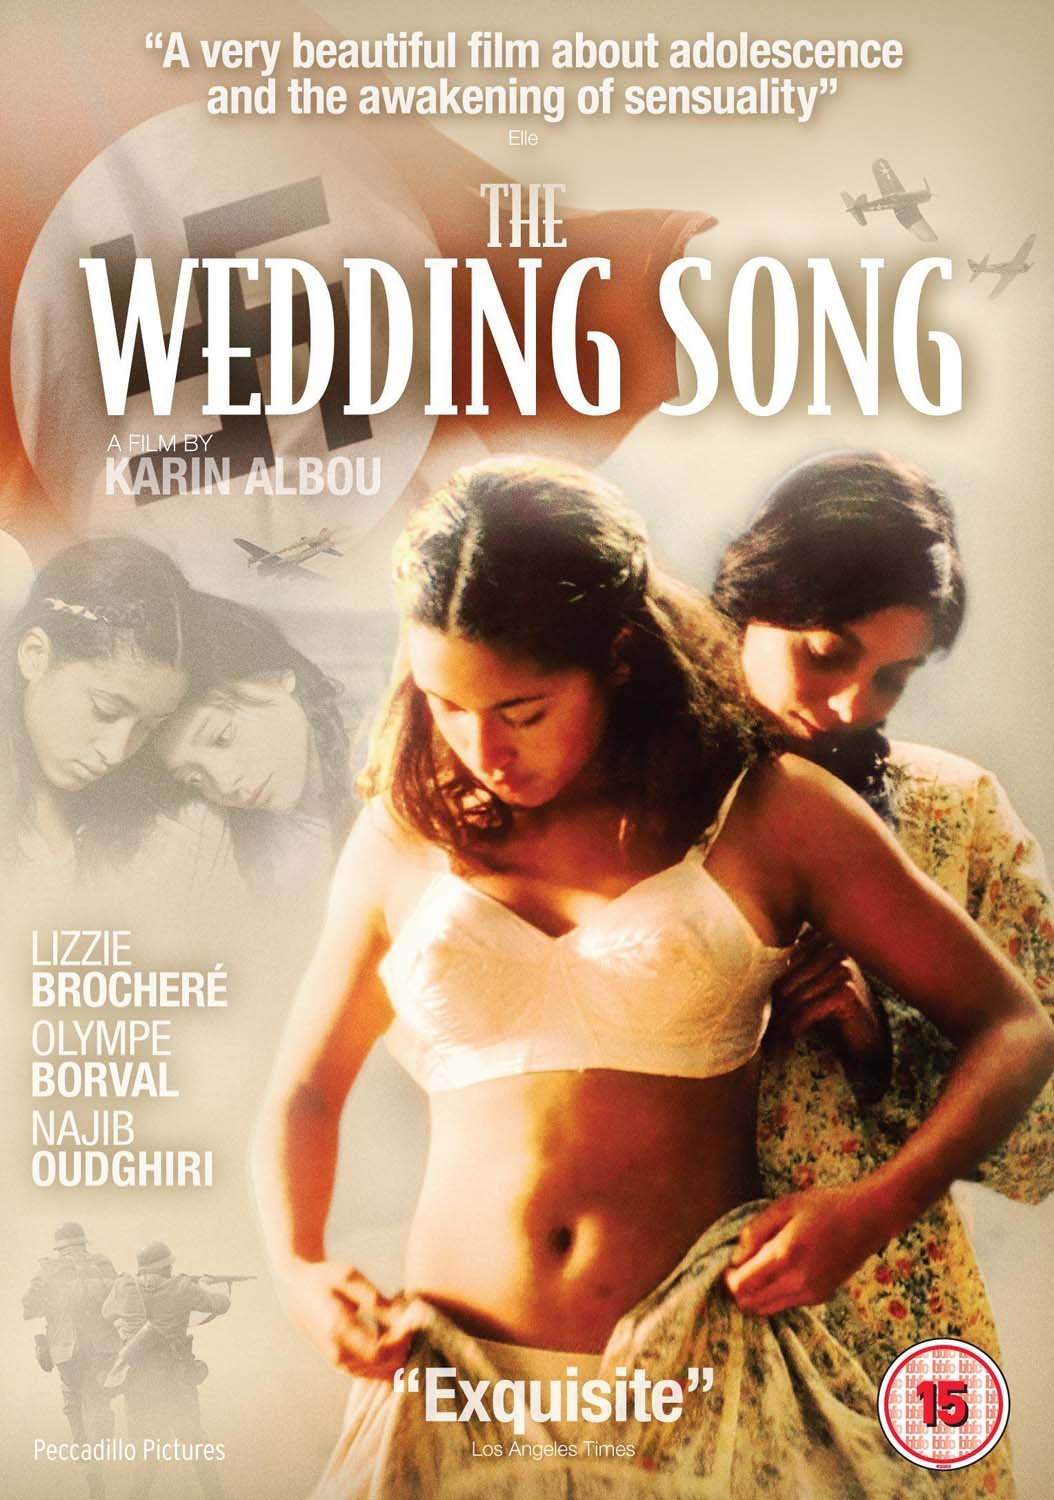 Amazon.com: The Wedding Song [DVD] [9]: Movies & TV